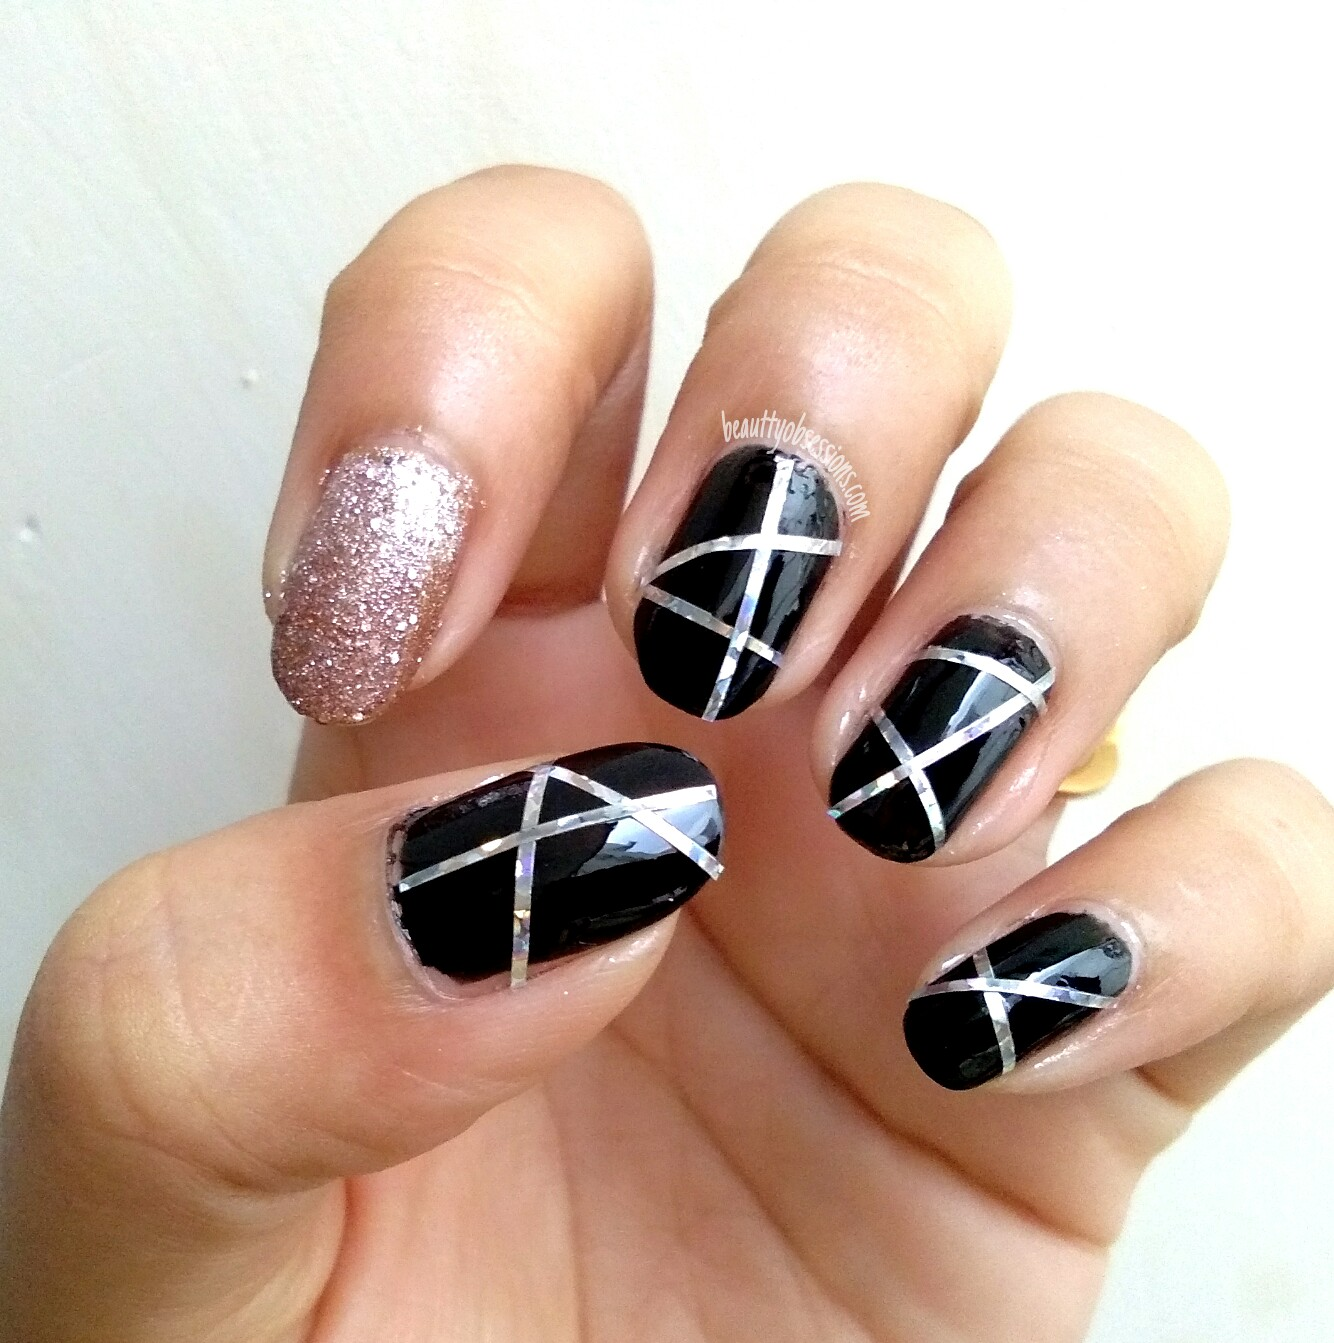 Step By Step Nail Art Using Tape: Two Easy Party Nails Ideas Using Nail Striping Tape